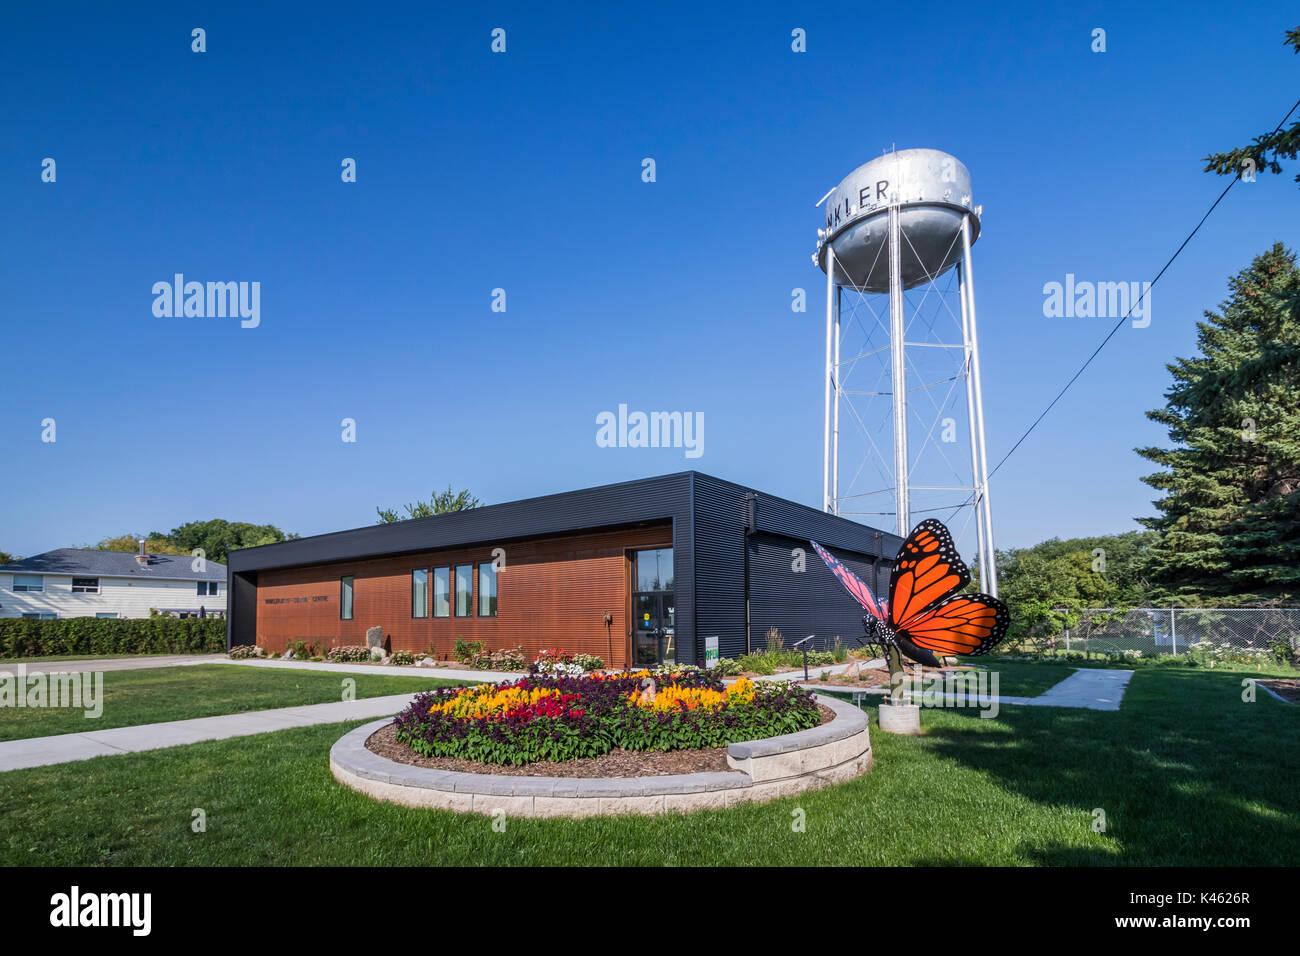 Giant Wall Murals Butterfly Building Stock Photos Amp Butterfly Building Stock